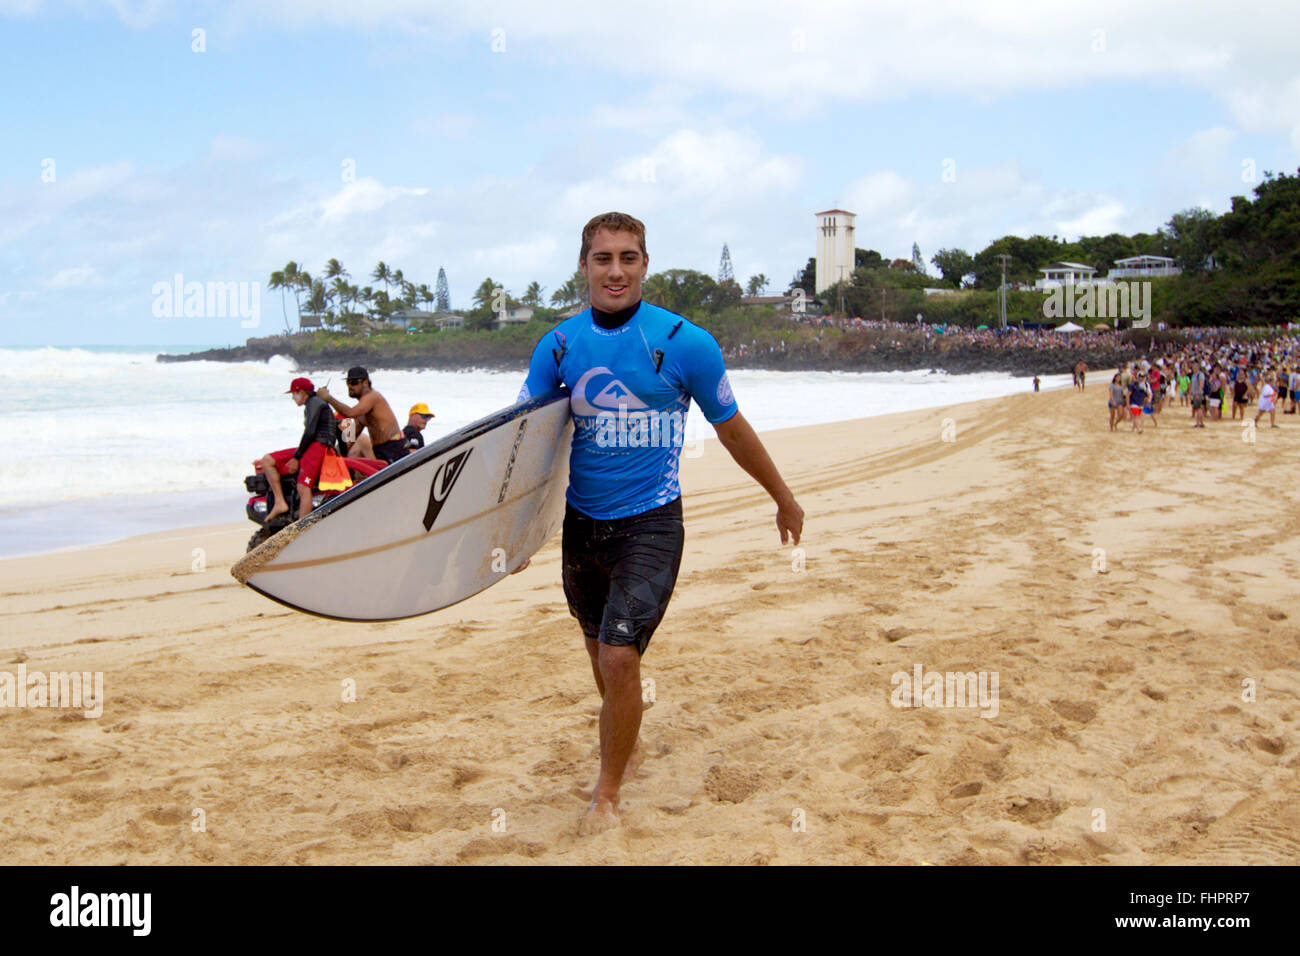 Haleiwa, Hawaii, USA. 25th February, 2016. February 25, 2016 - Koa Rothman smiles after his heat during the action - Stock Image